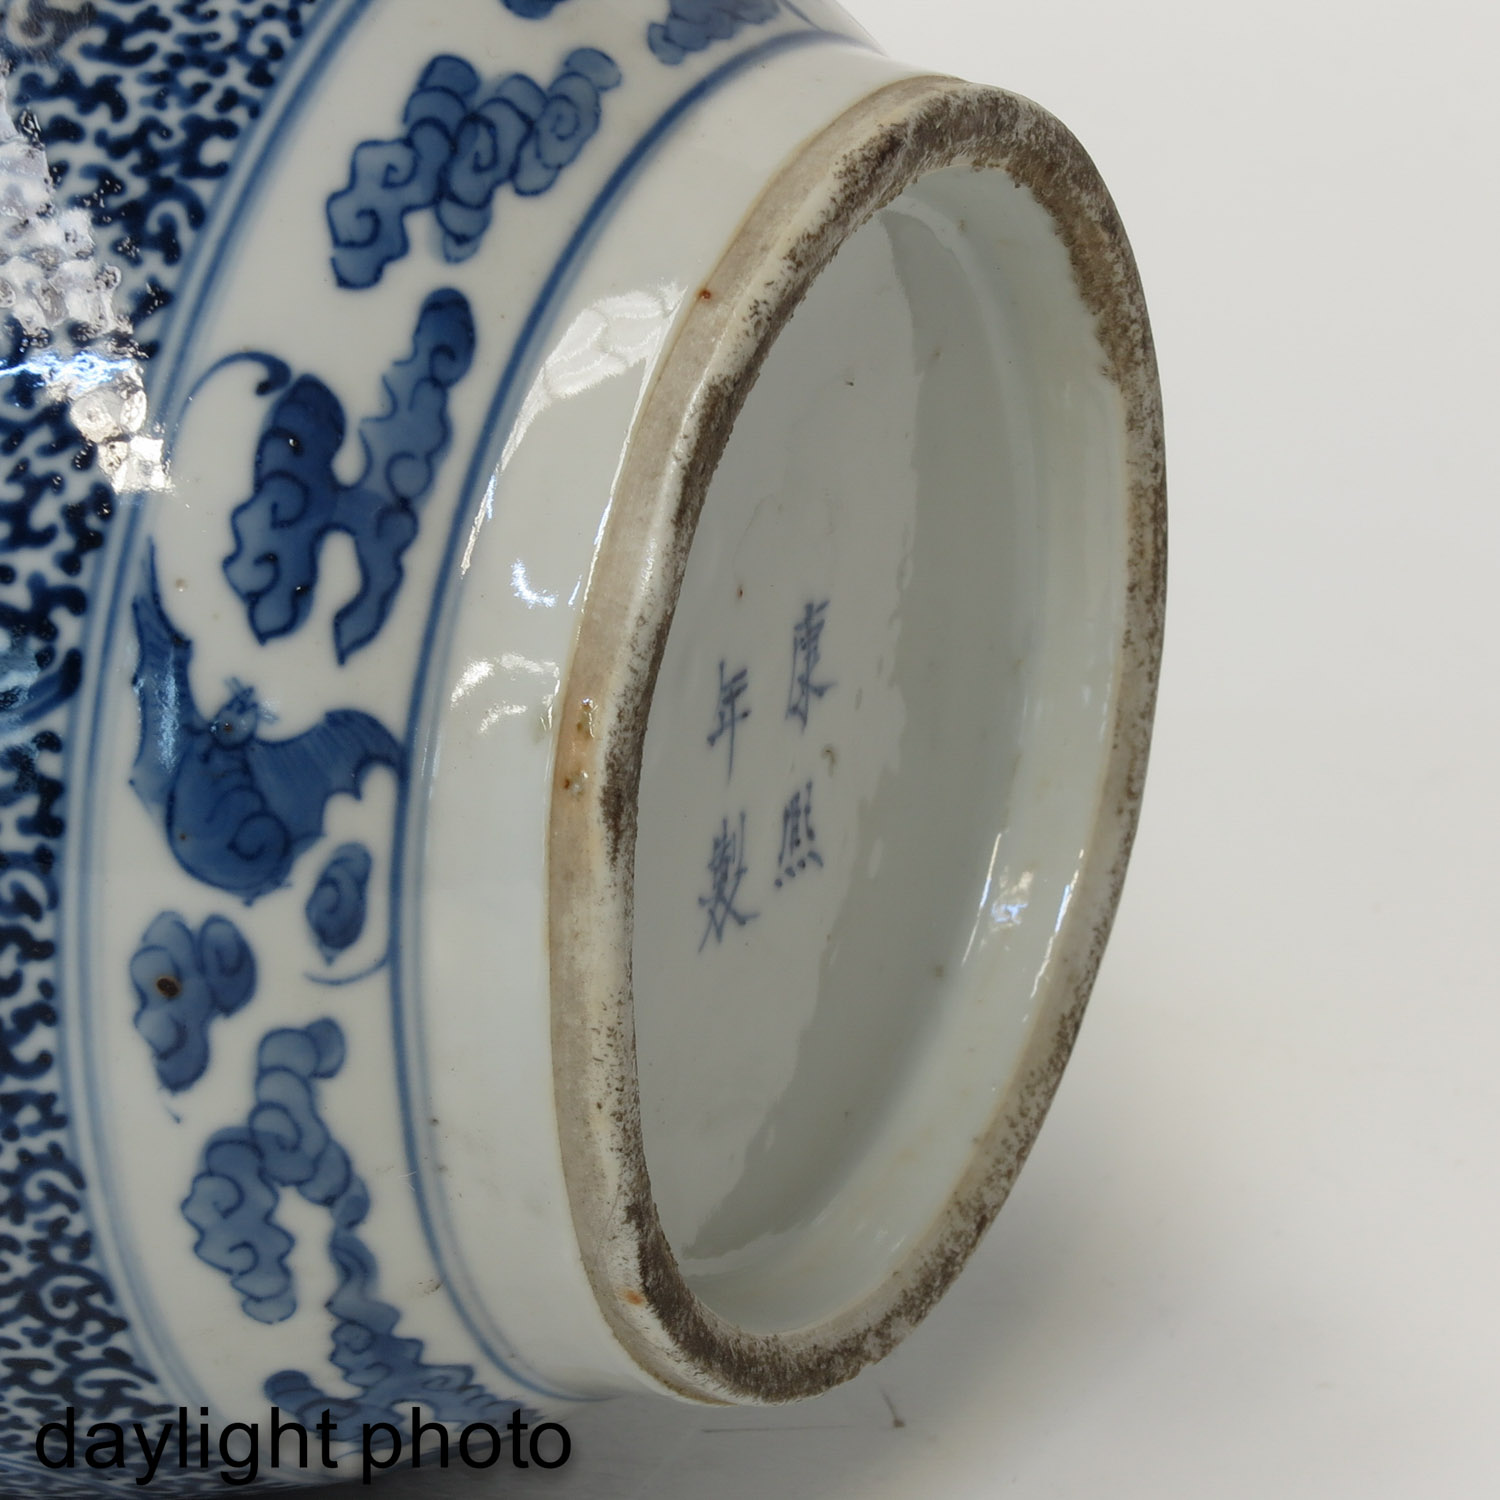 A Pair of Blue and White Vases - Image 8 of 10